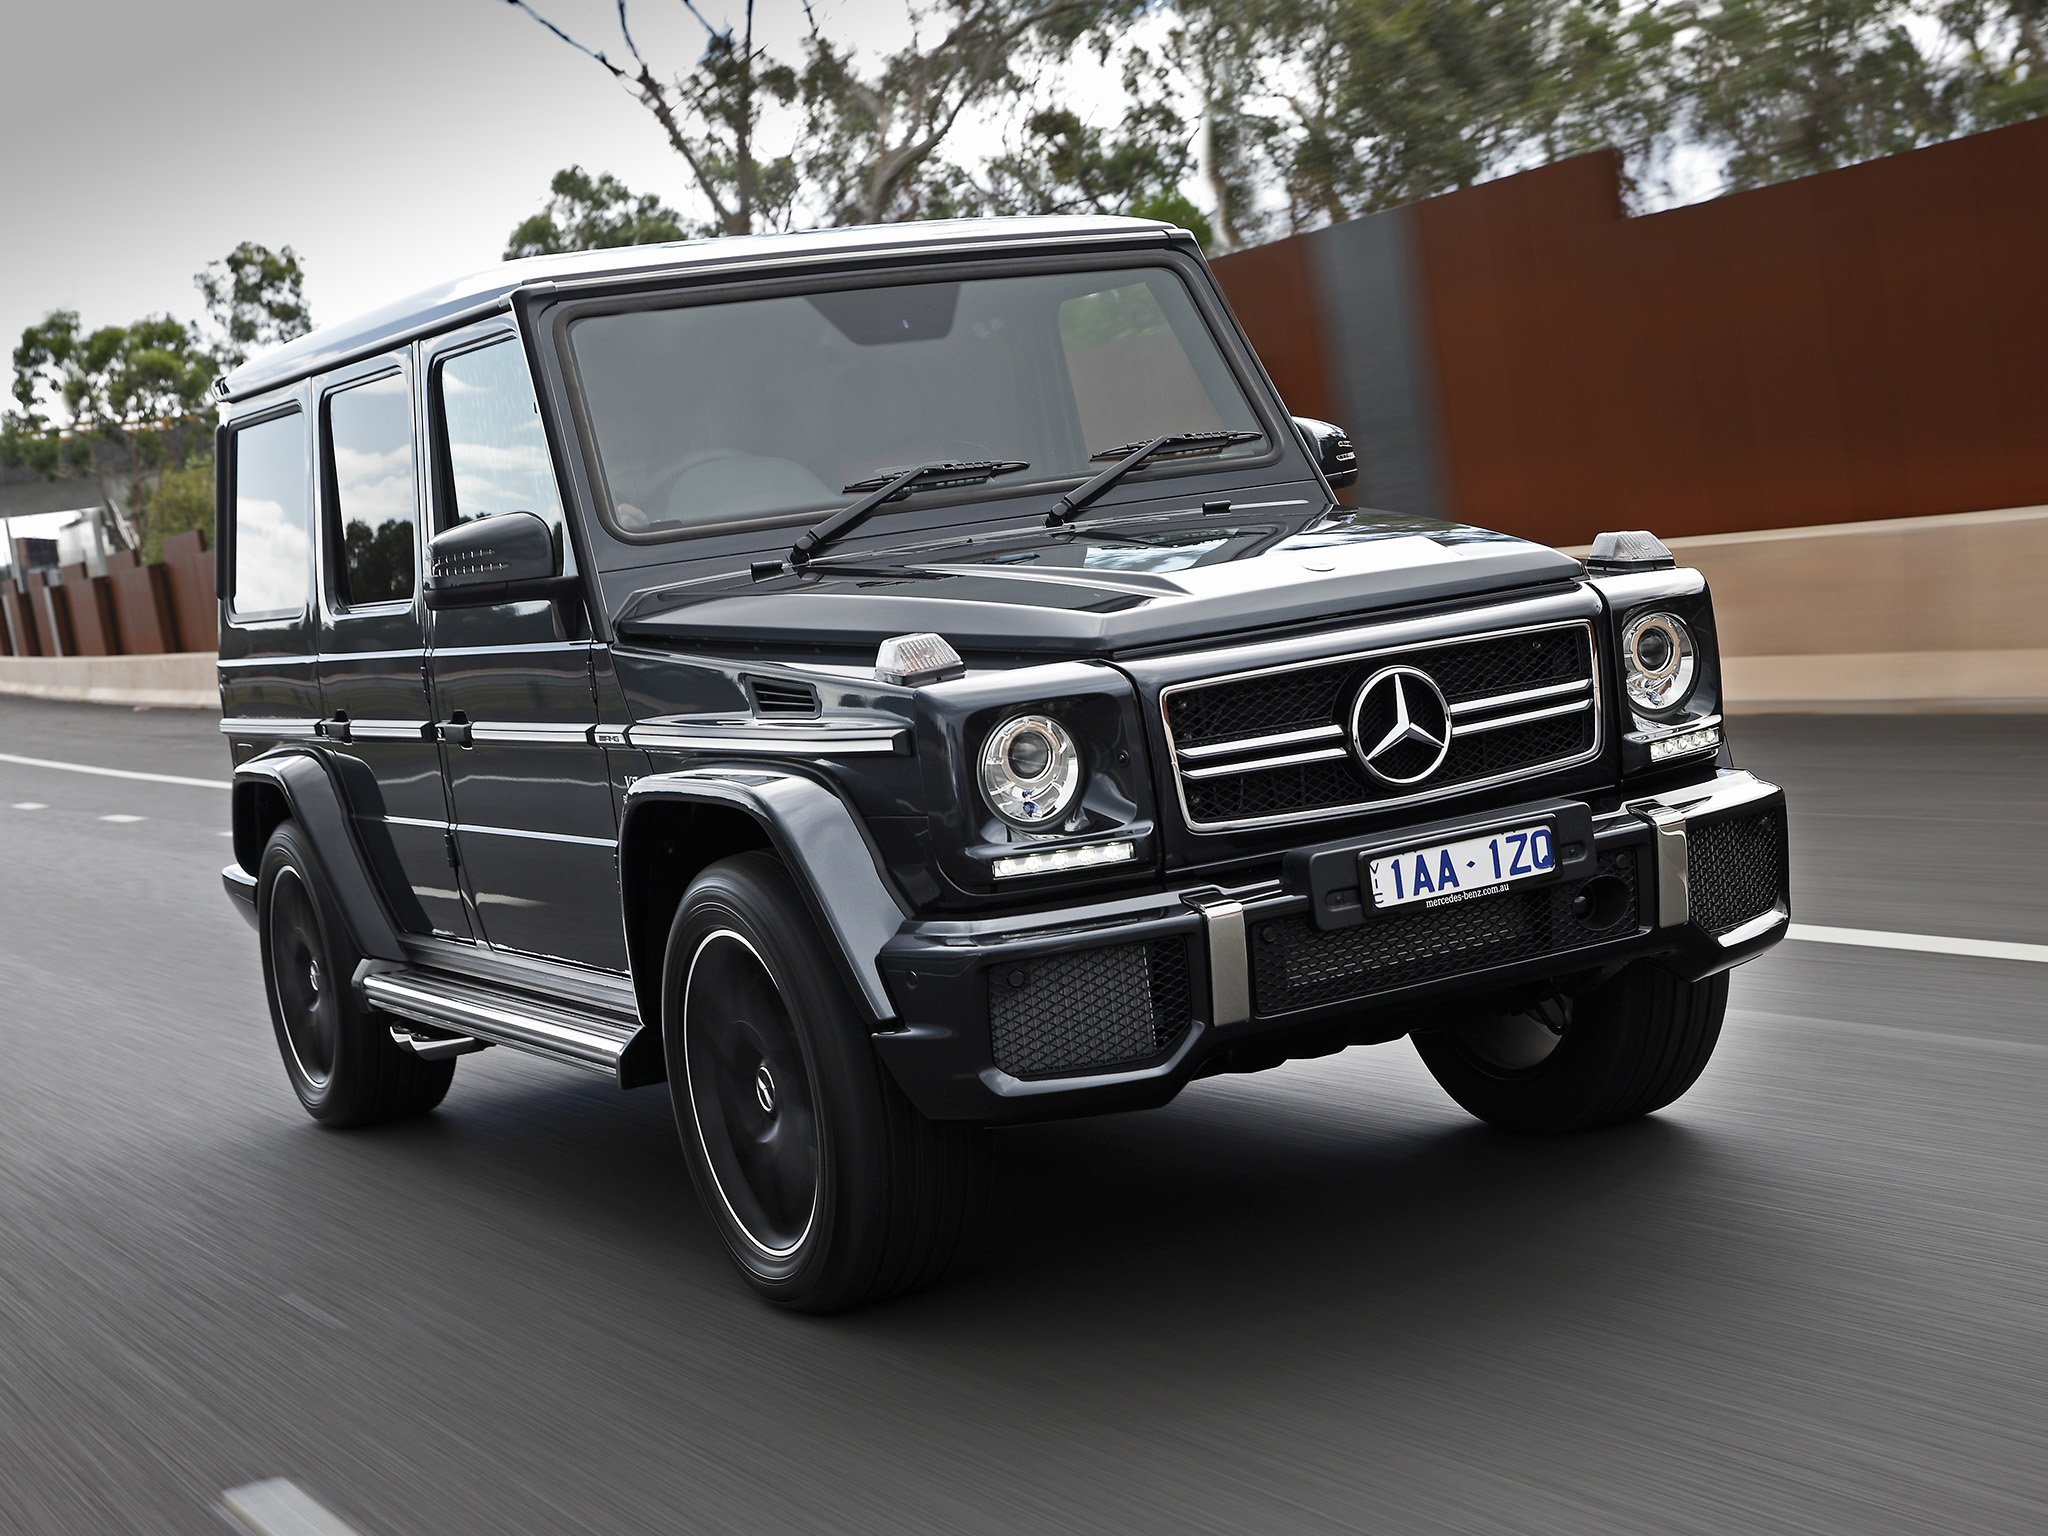 mercedes benz g63 amg au spec w463 2012 cars 4x4 4wd On mercedes benz 4wd